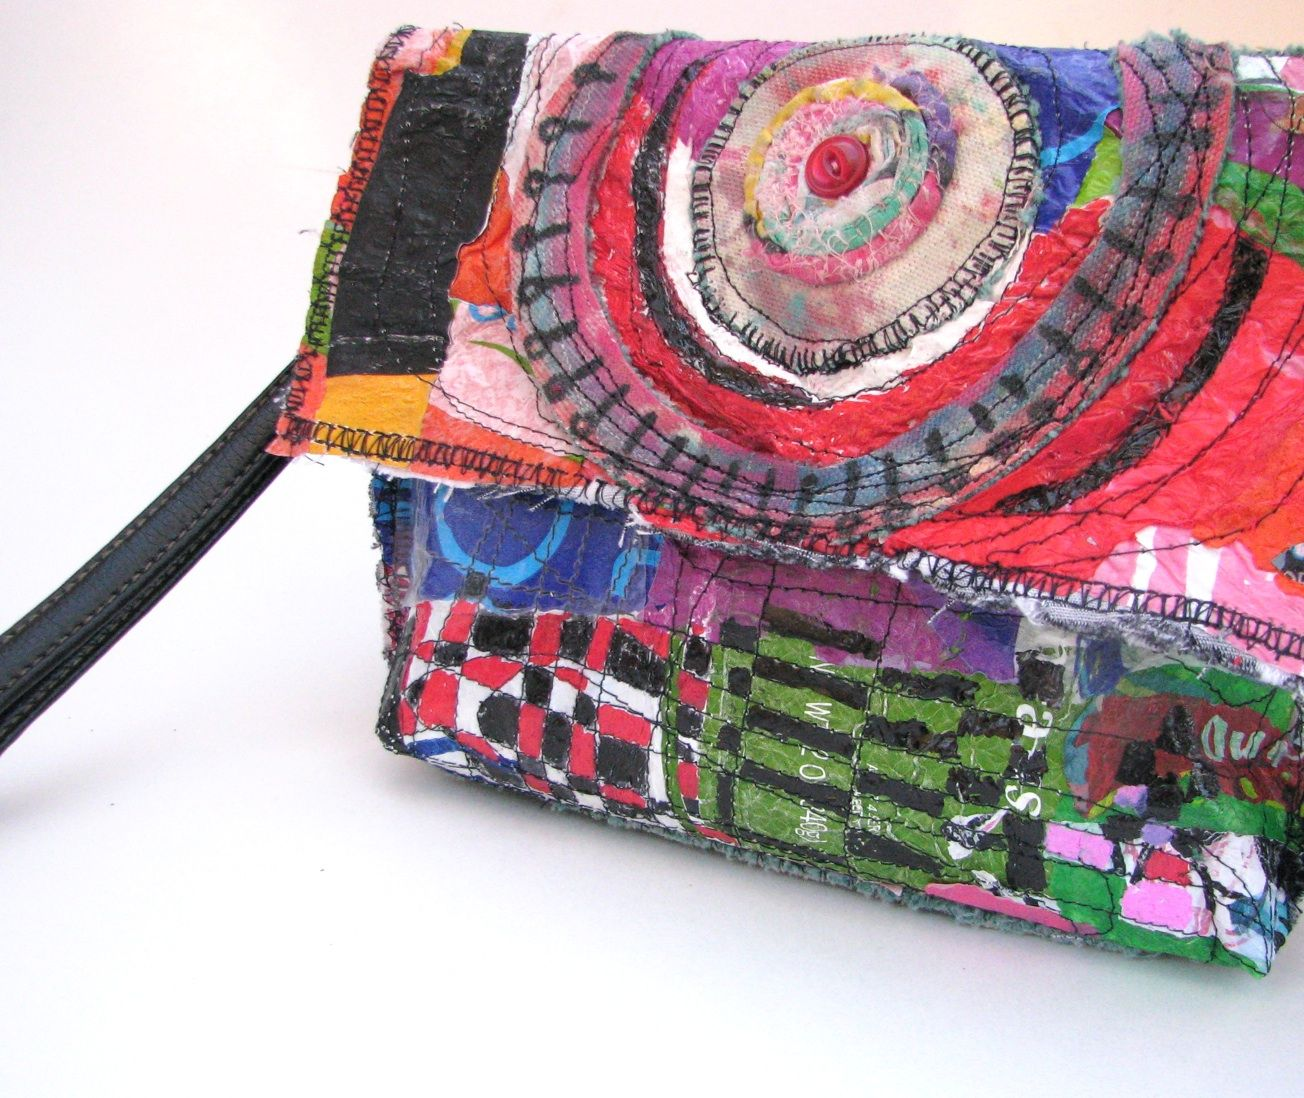 Pin by Elenor Martin on recycled plastic bags and bottles   Pinterest